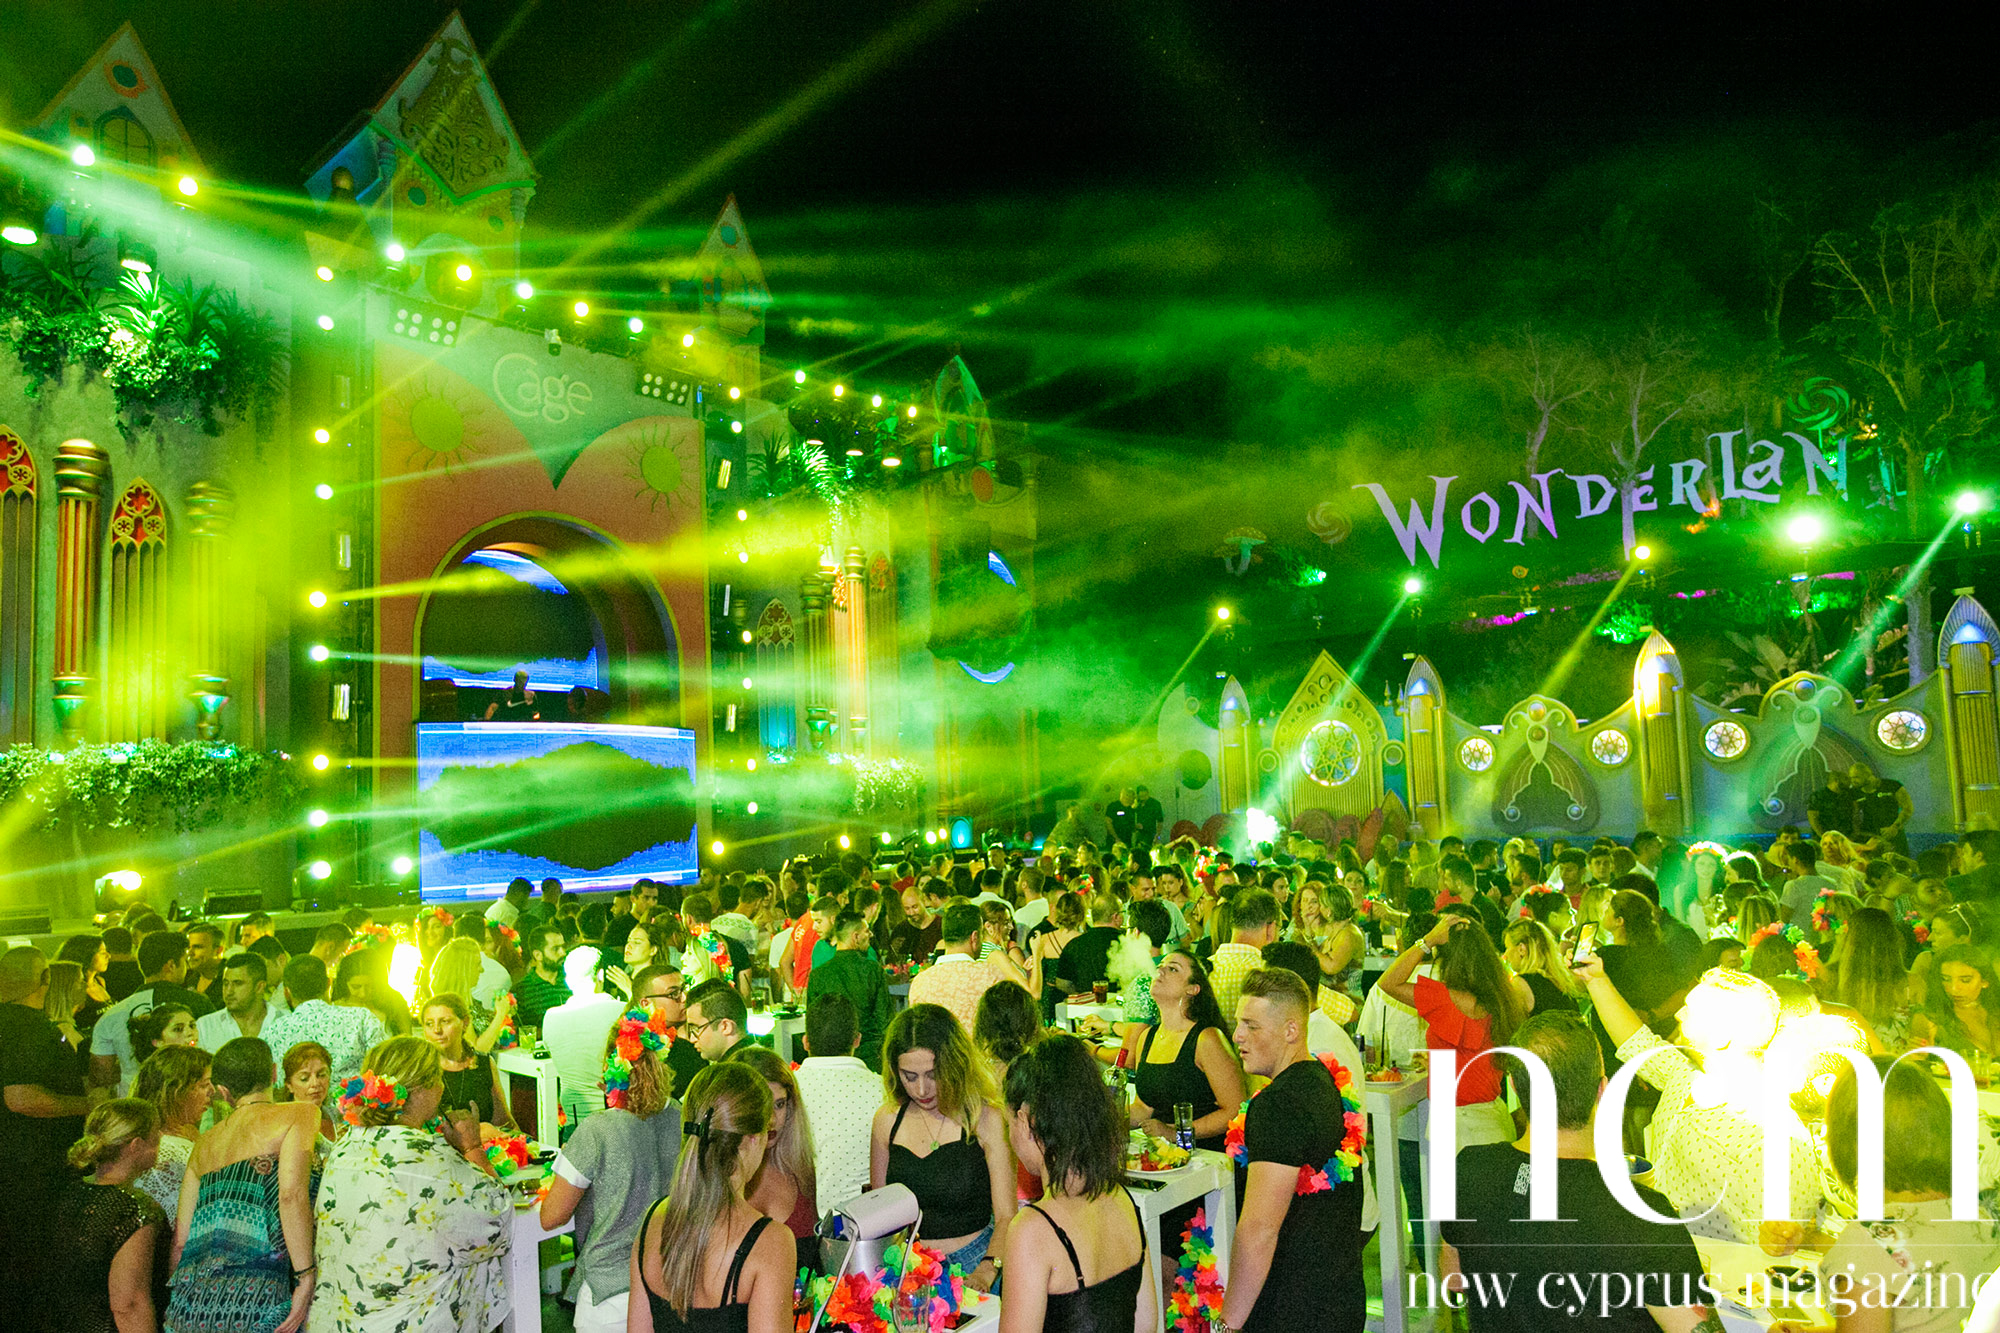 Party at Cage Club Wonderland